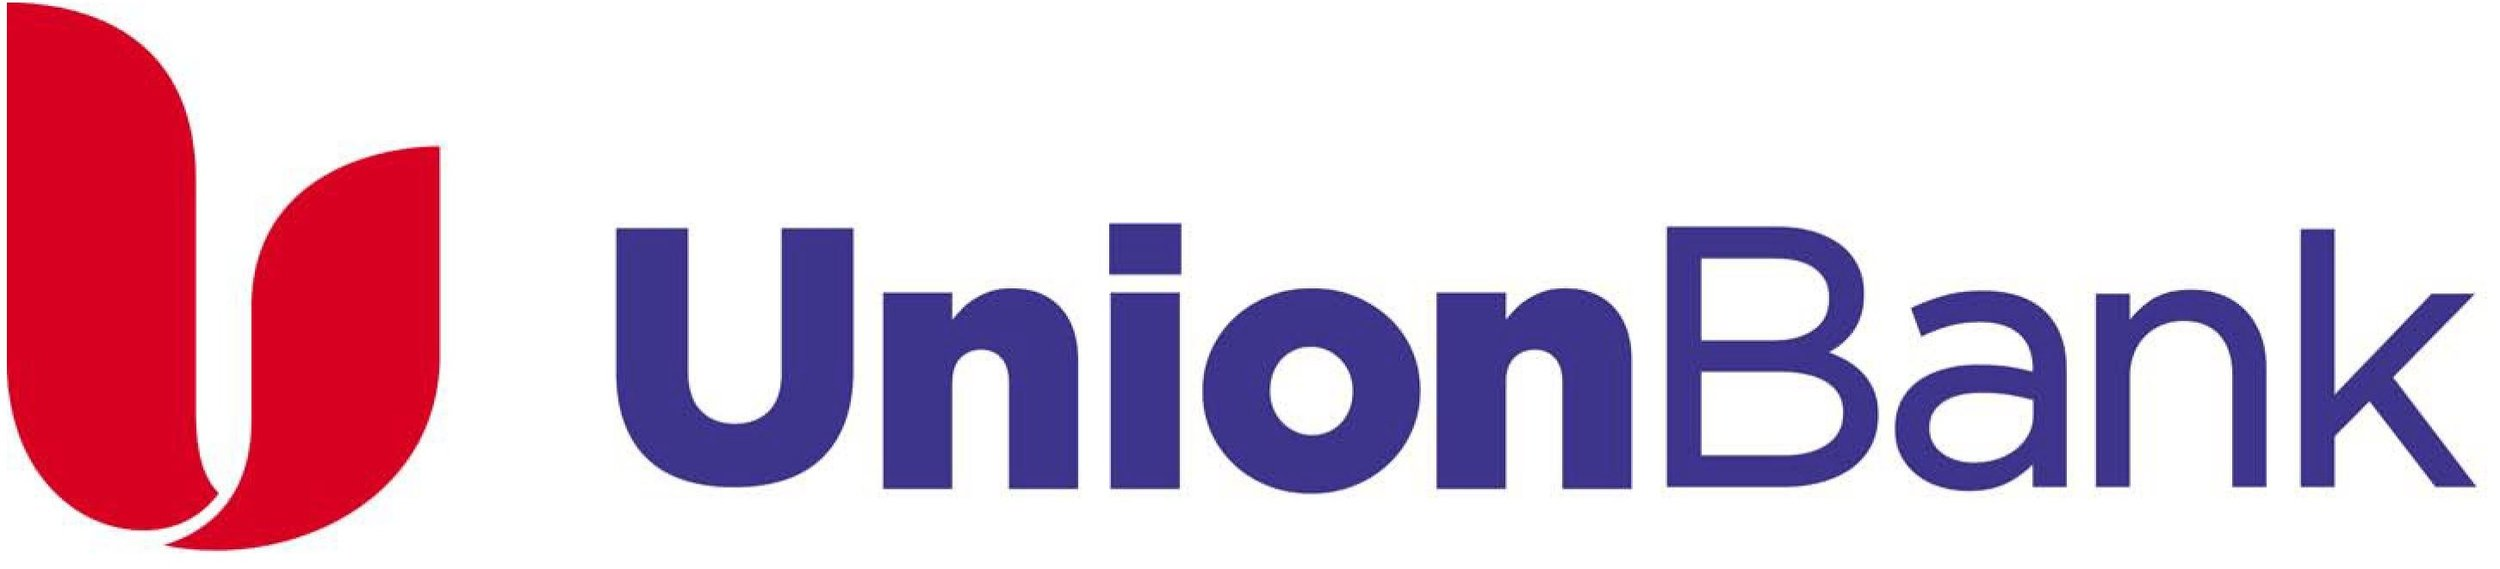 union_bank-logo.jpg